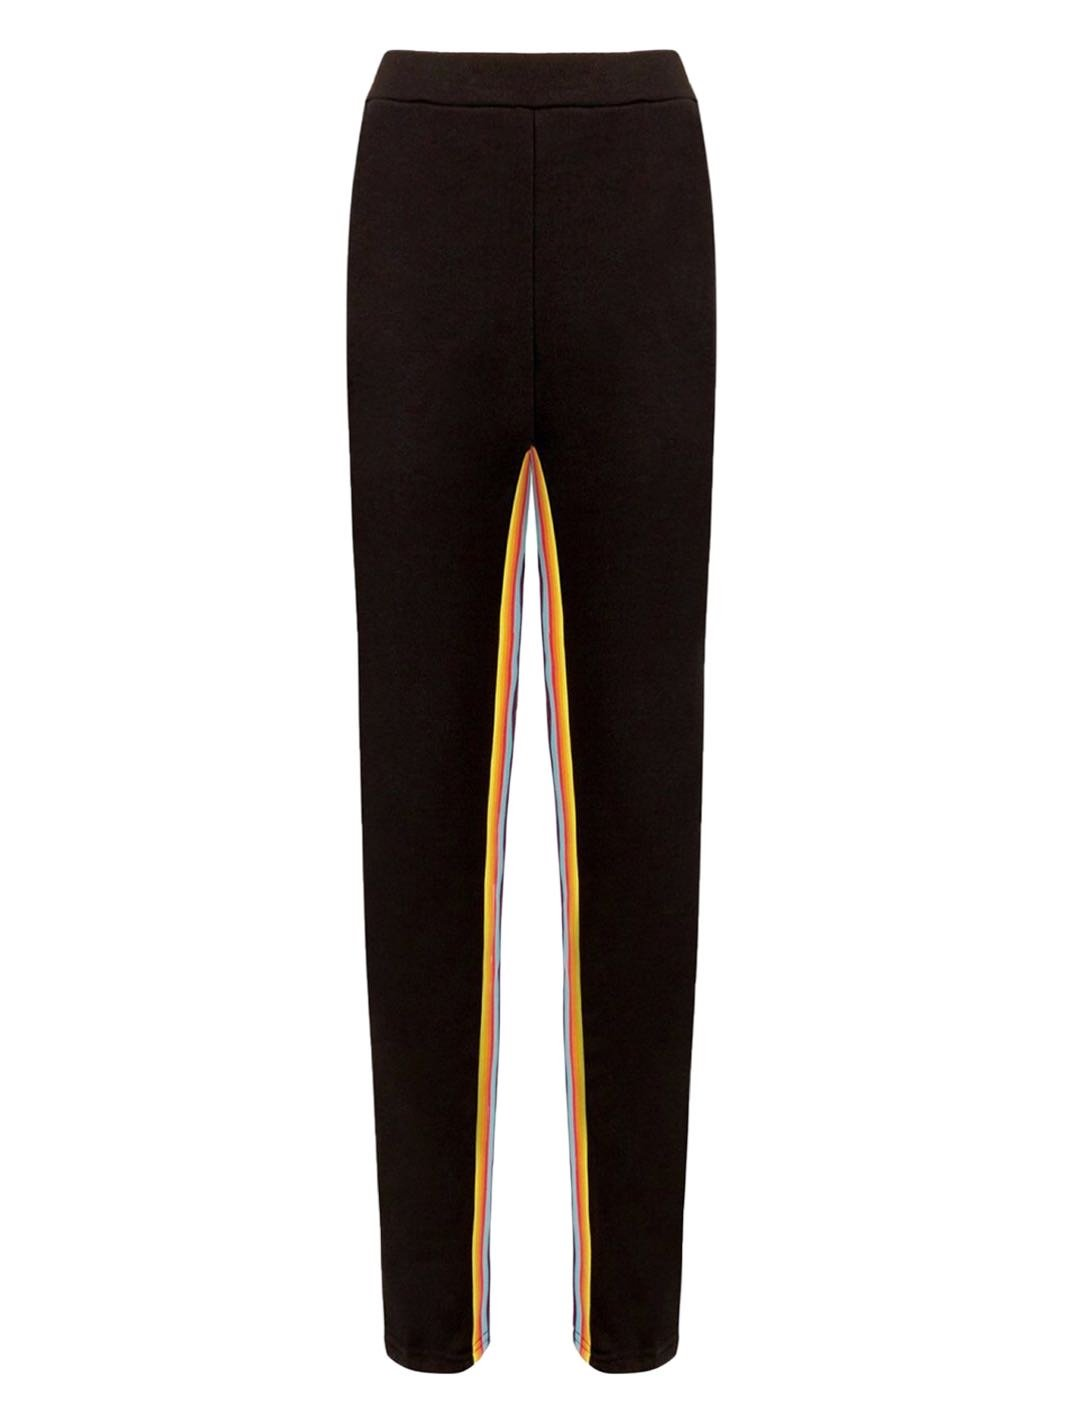 Tuta Black Pants - The Bobby Boga